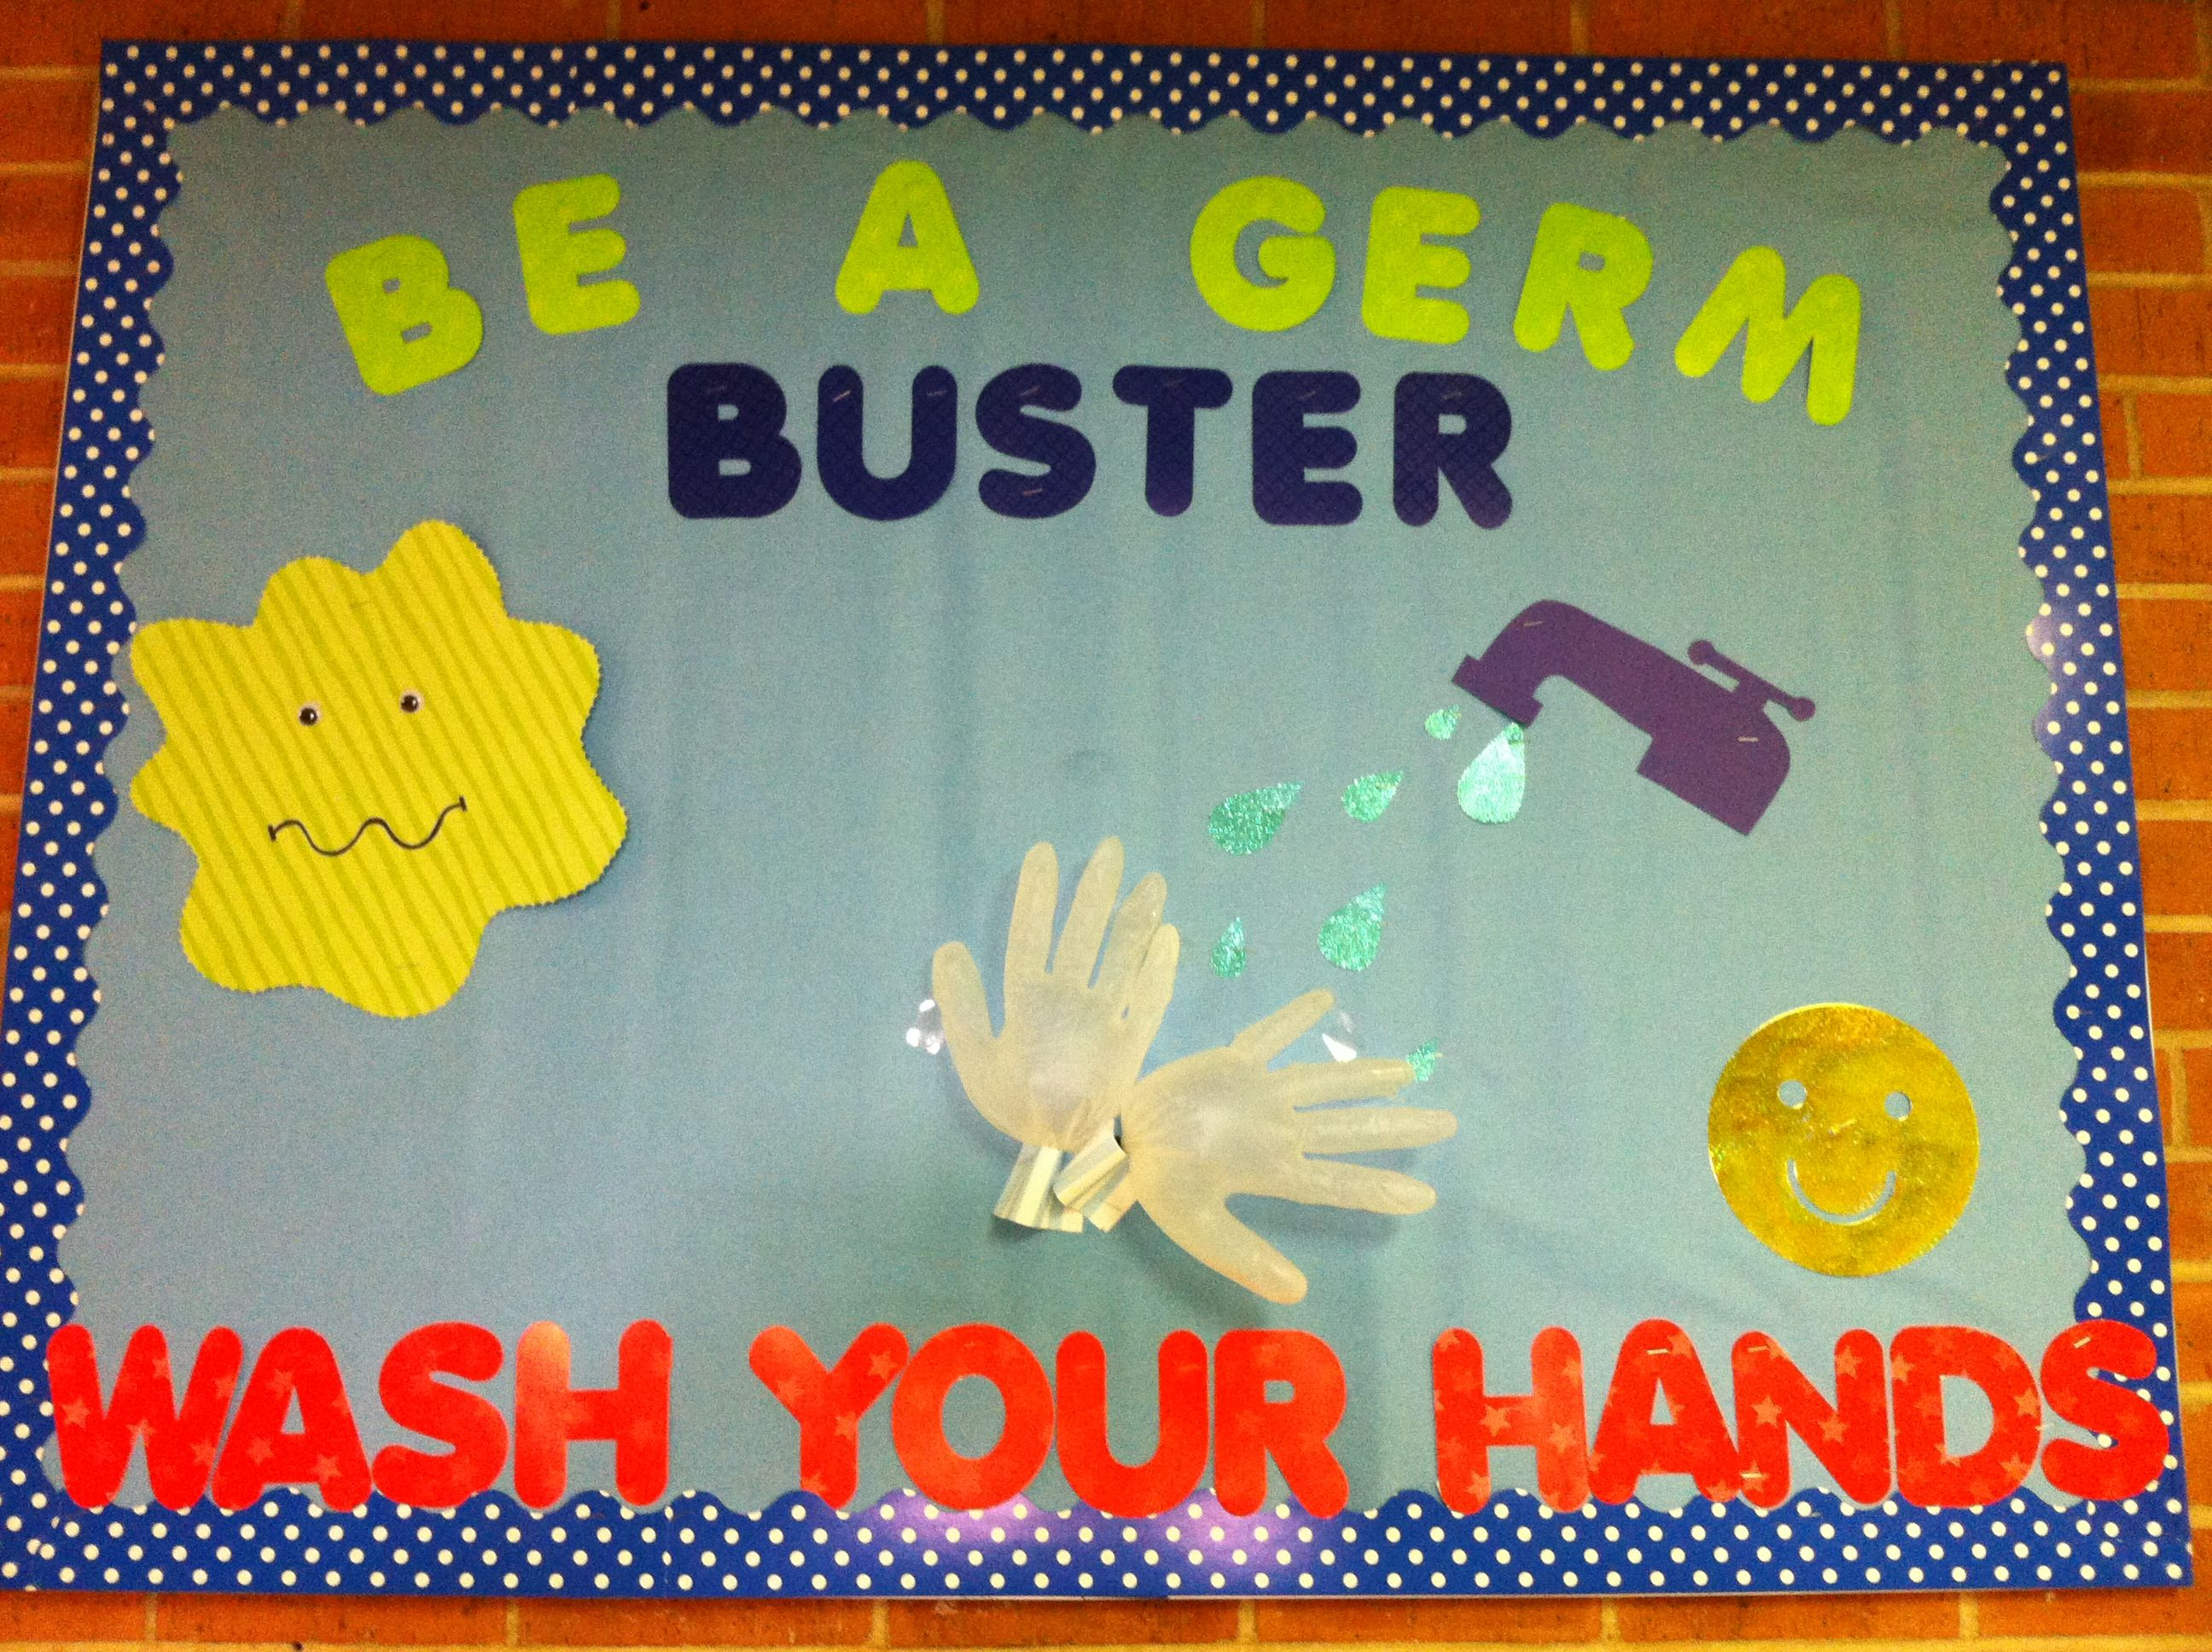 School Clinic Decorations 17 Best Images About School Clinic Ideas On Pinterest Hand